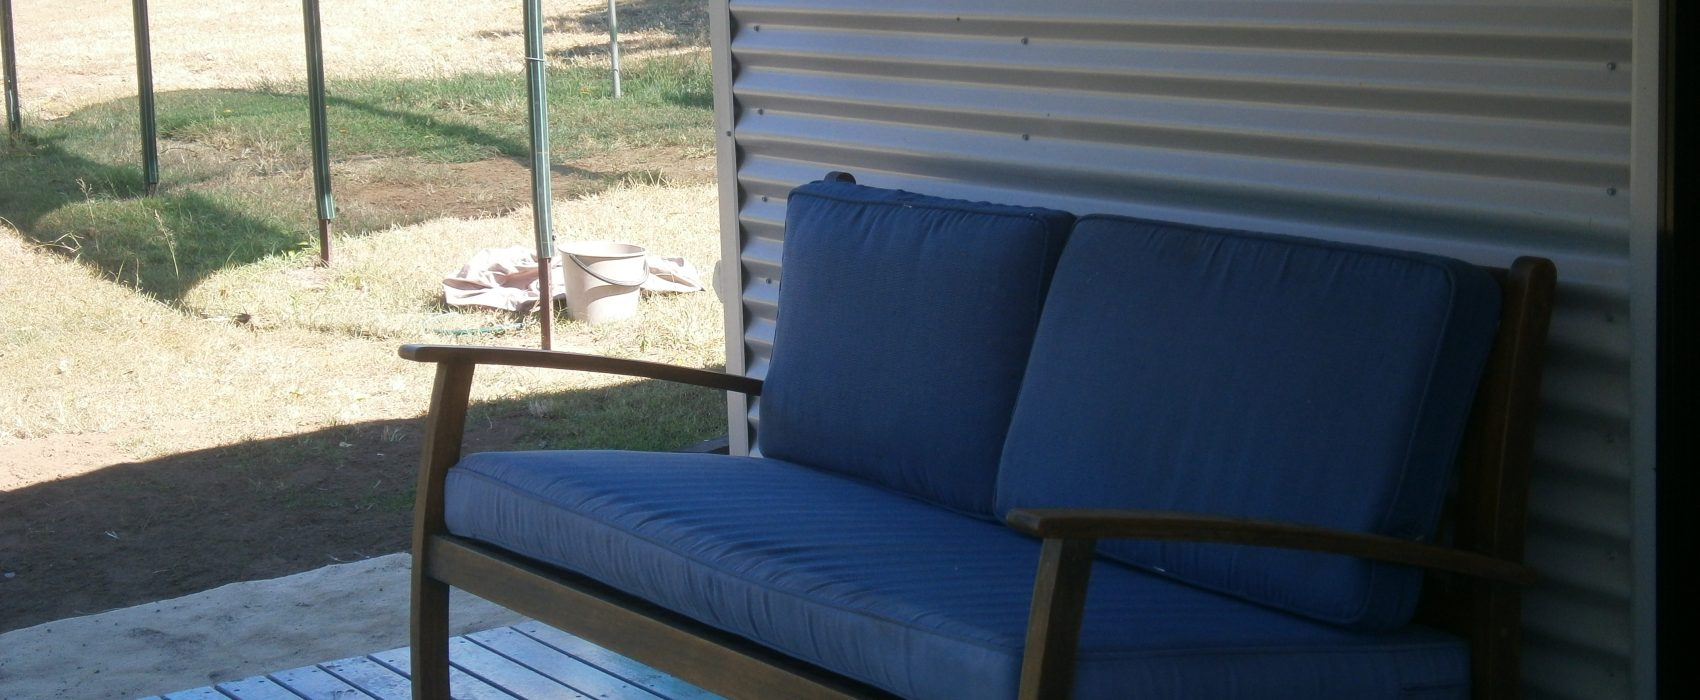 day bed on verandah